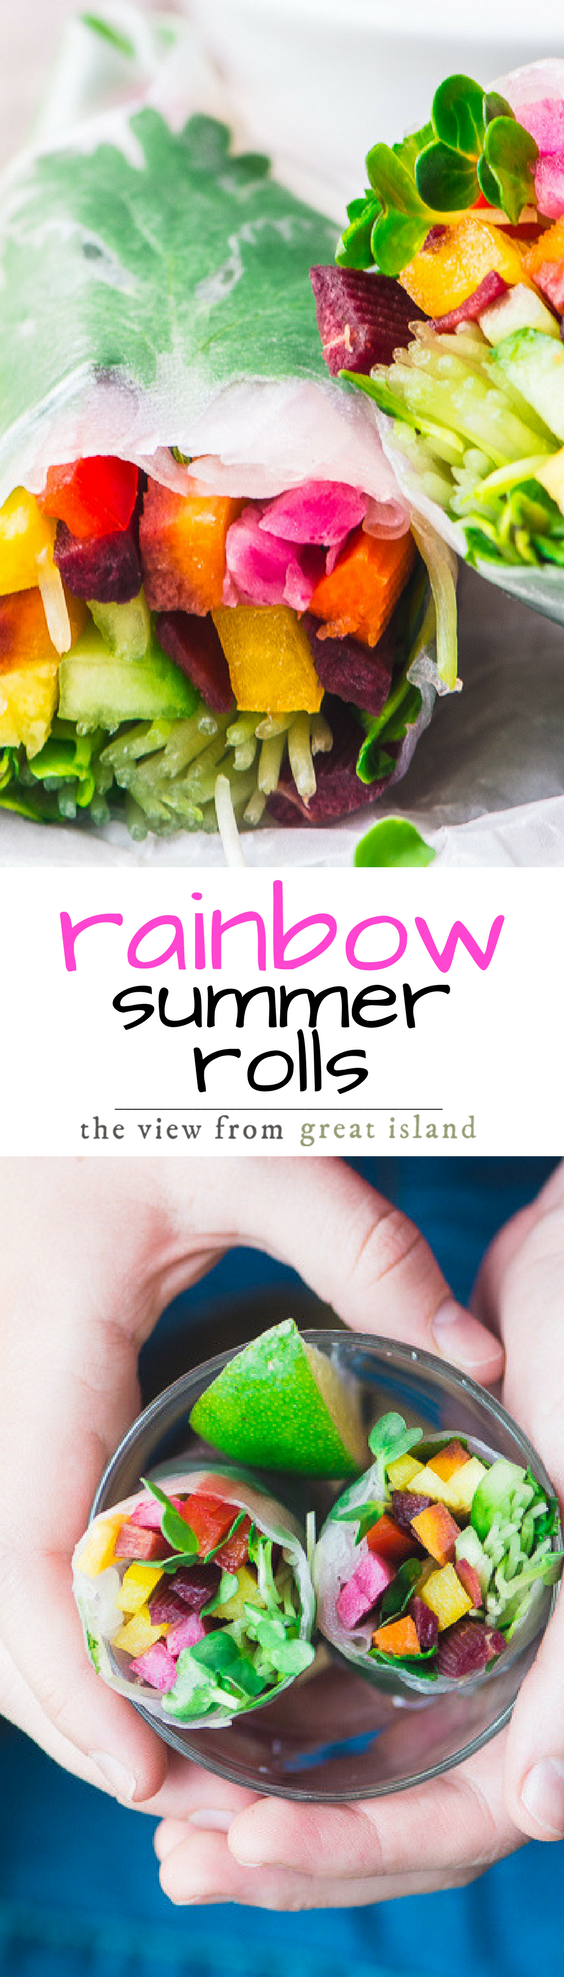 These refreshing Rainbow Summer Rolls are like a cool breeze on a hot day, and they get bonus points for fitting in to just about any diet you're on, from low carb and gluten free, to vegan, Paleo, Whole 30, and Weight Watchers ~